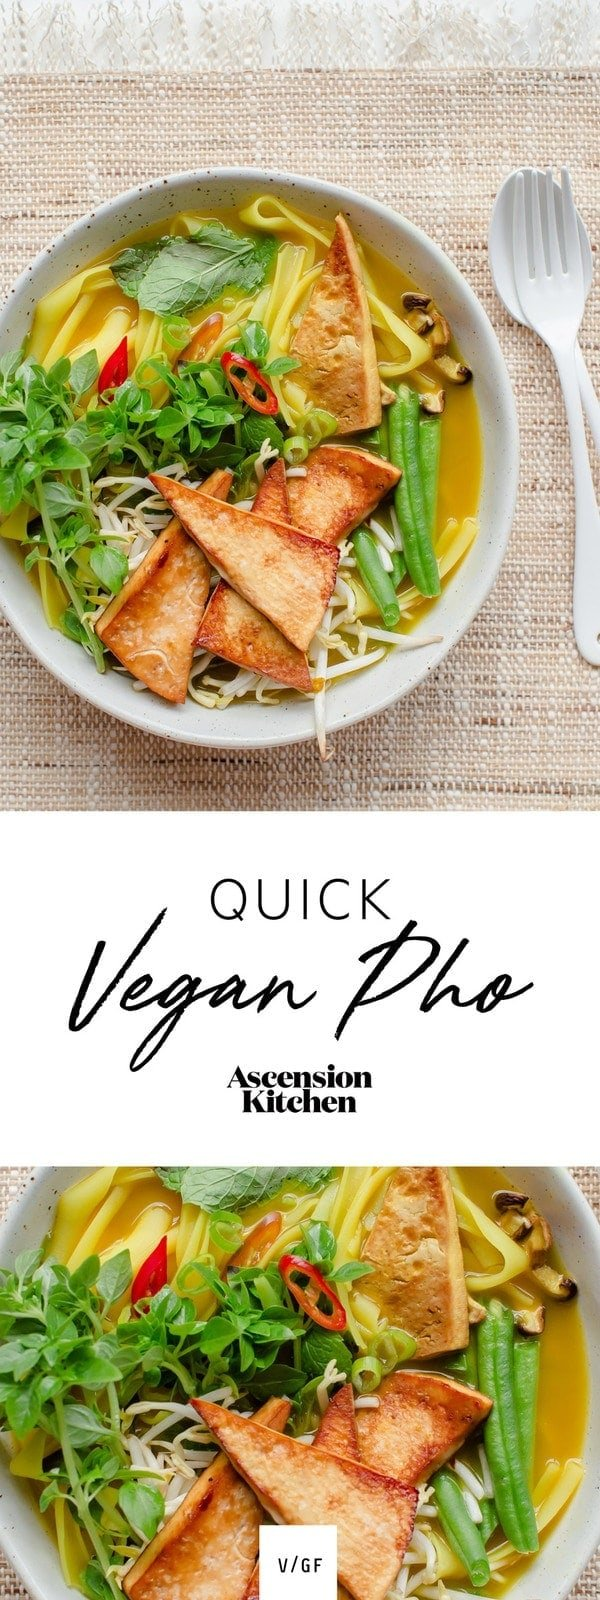 Quick, 30 minute Vegan Pho – made with a plant-based, aromatic broth, shiitake and spiced tofu with lots of fresh herbs. #veganpho #vegetarianpho #easypho #quickpho #veganbroth #vegan #AscensionKitchen   // Pin to your own inspiration board! //